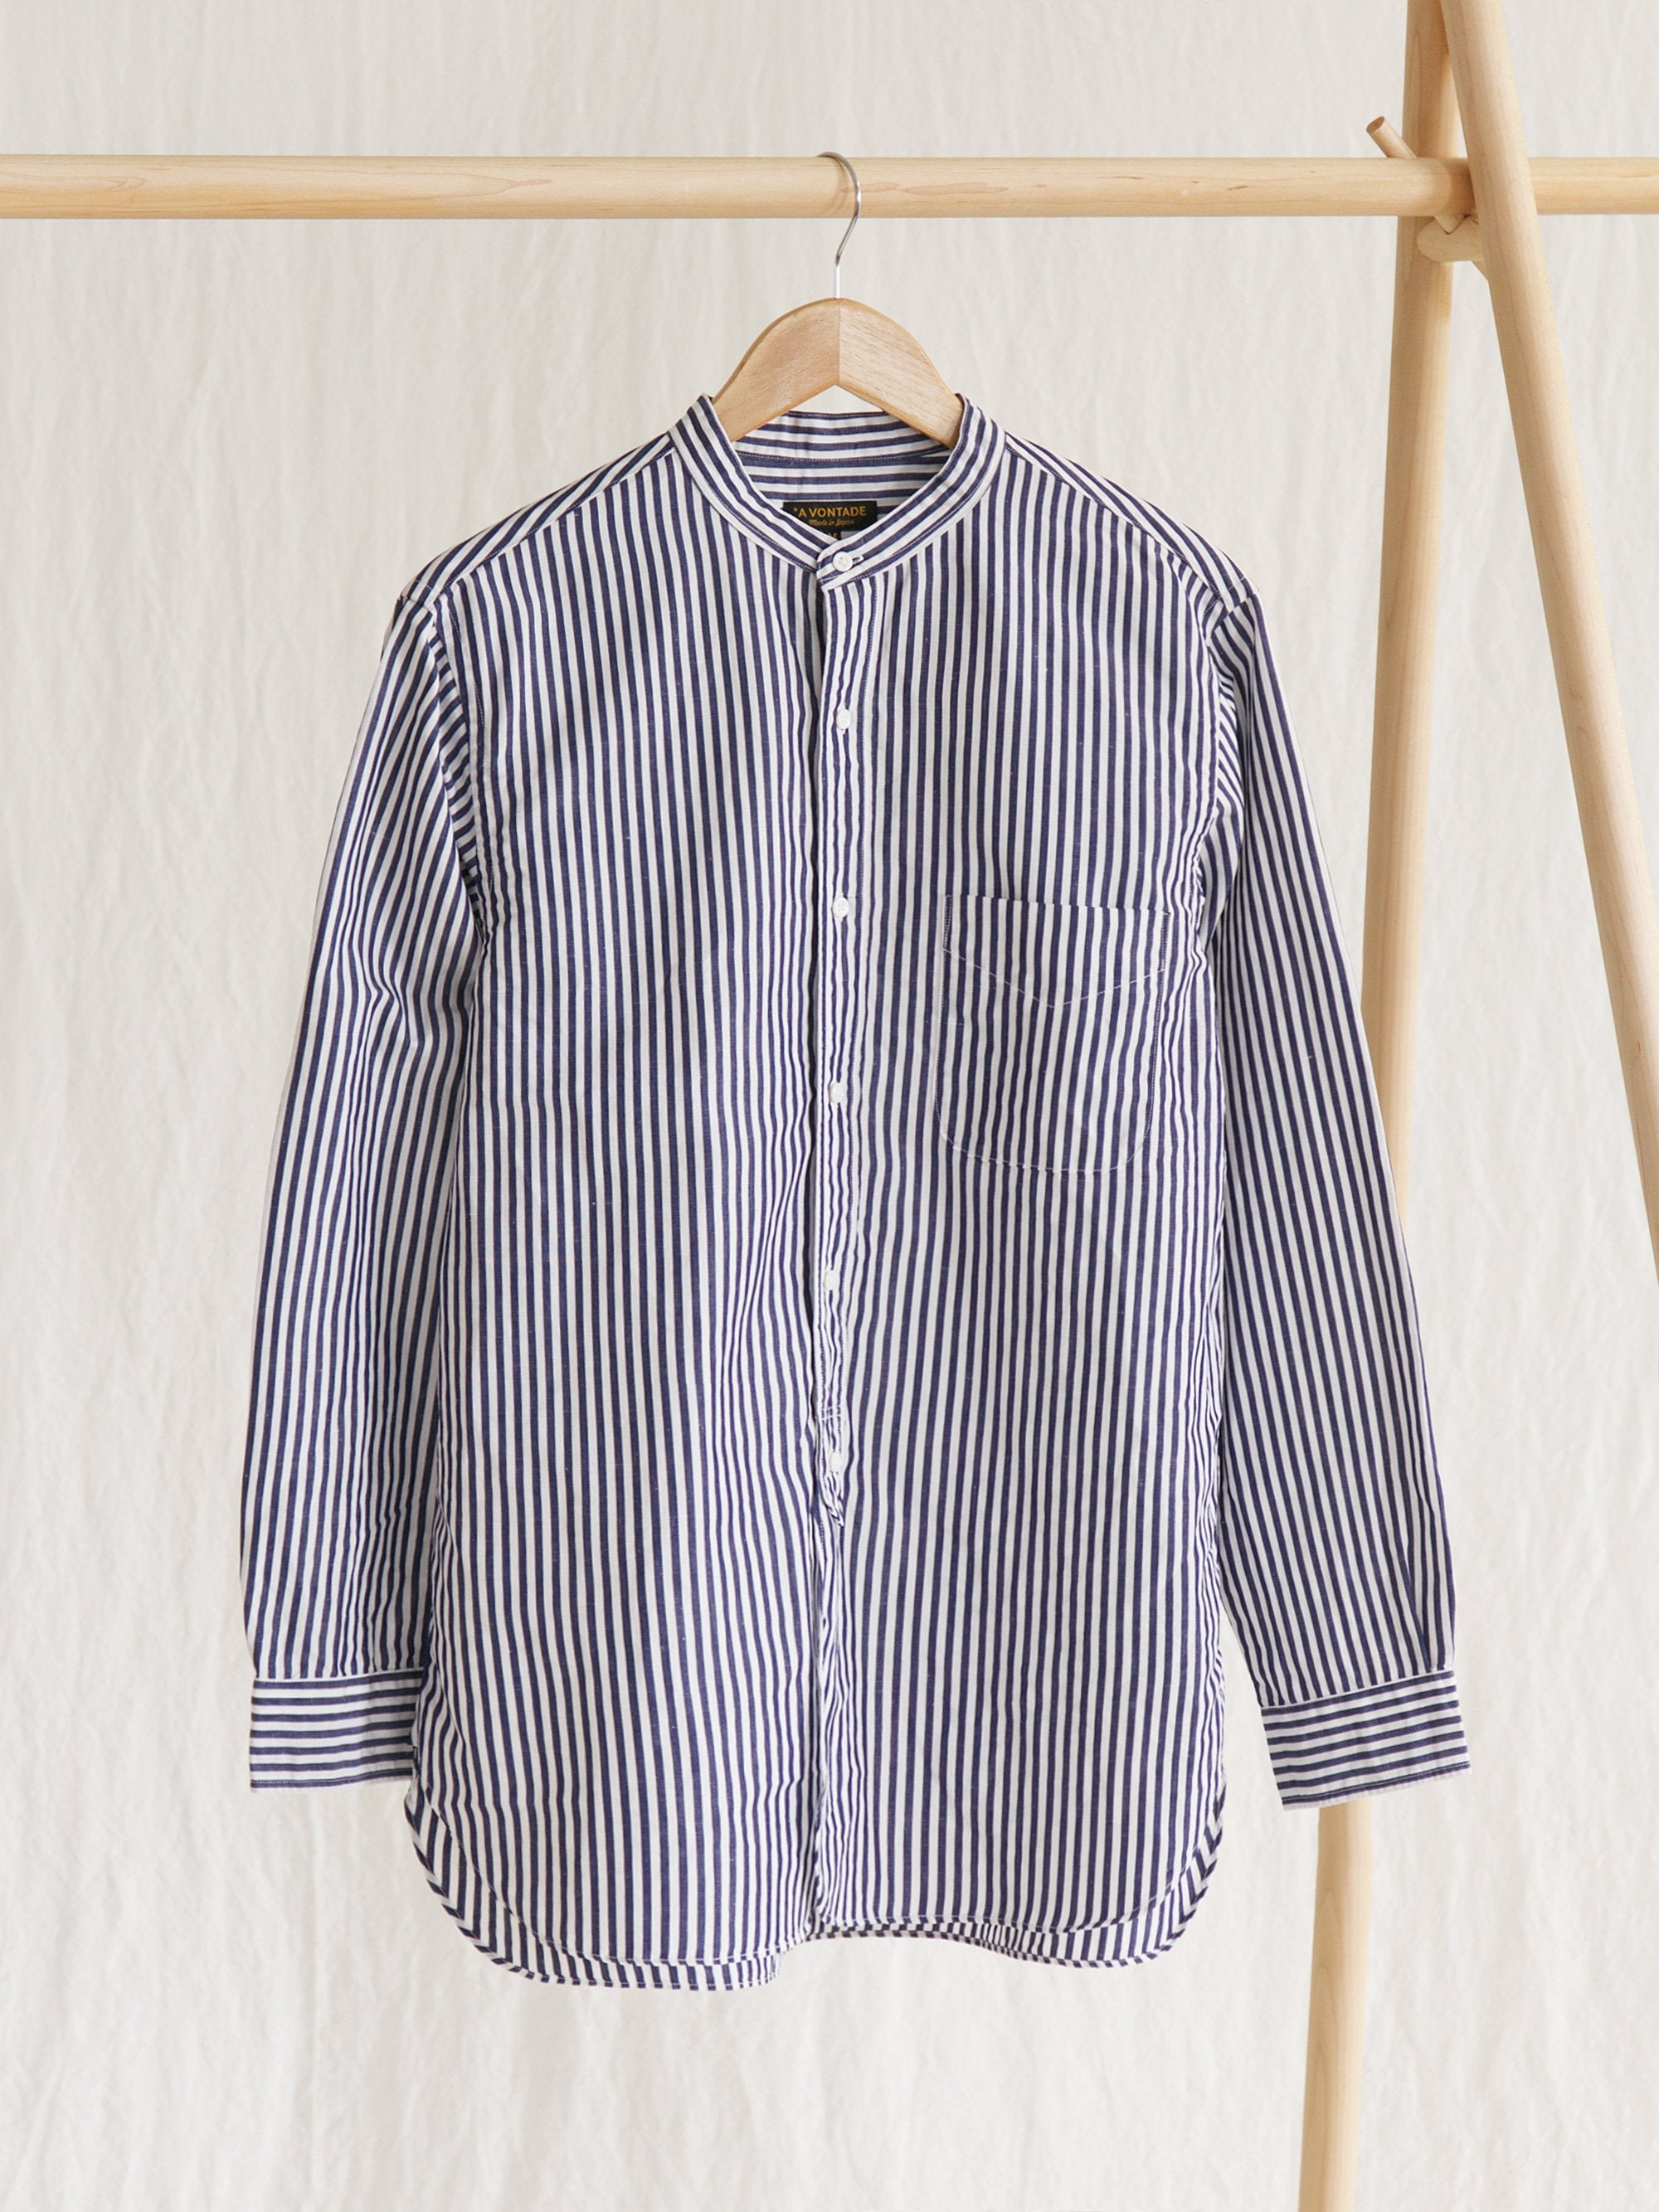 Namu Shop - A Vontade Banded Collar Shirt - Navy Stripe